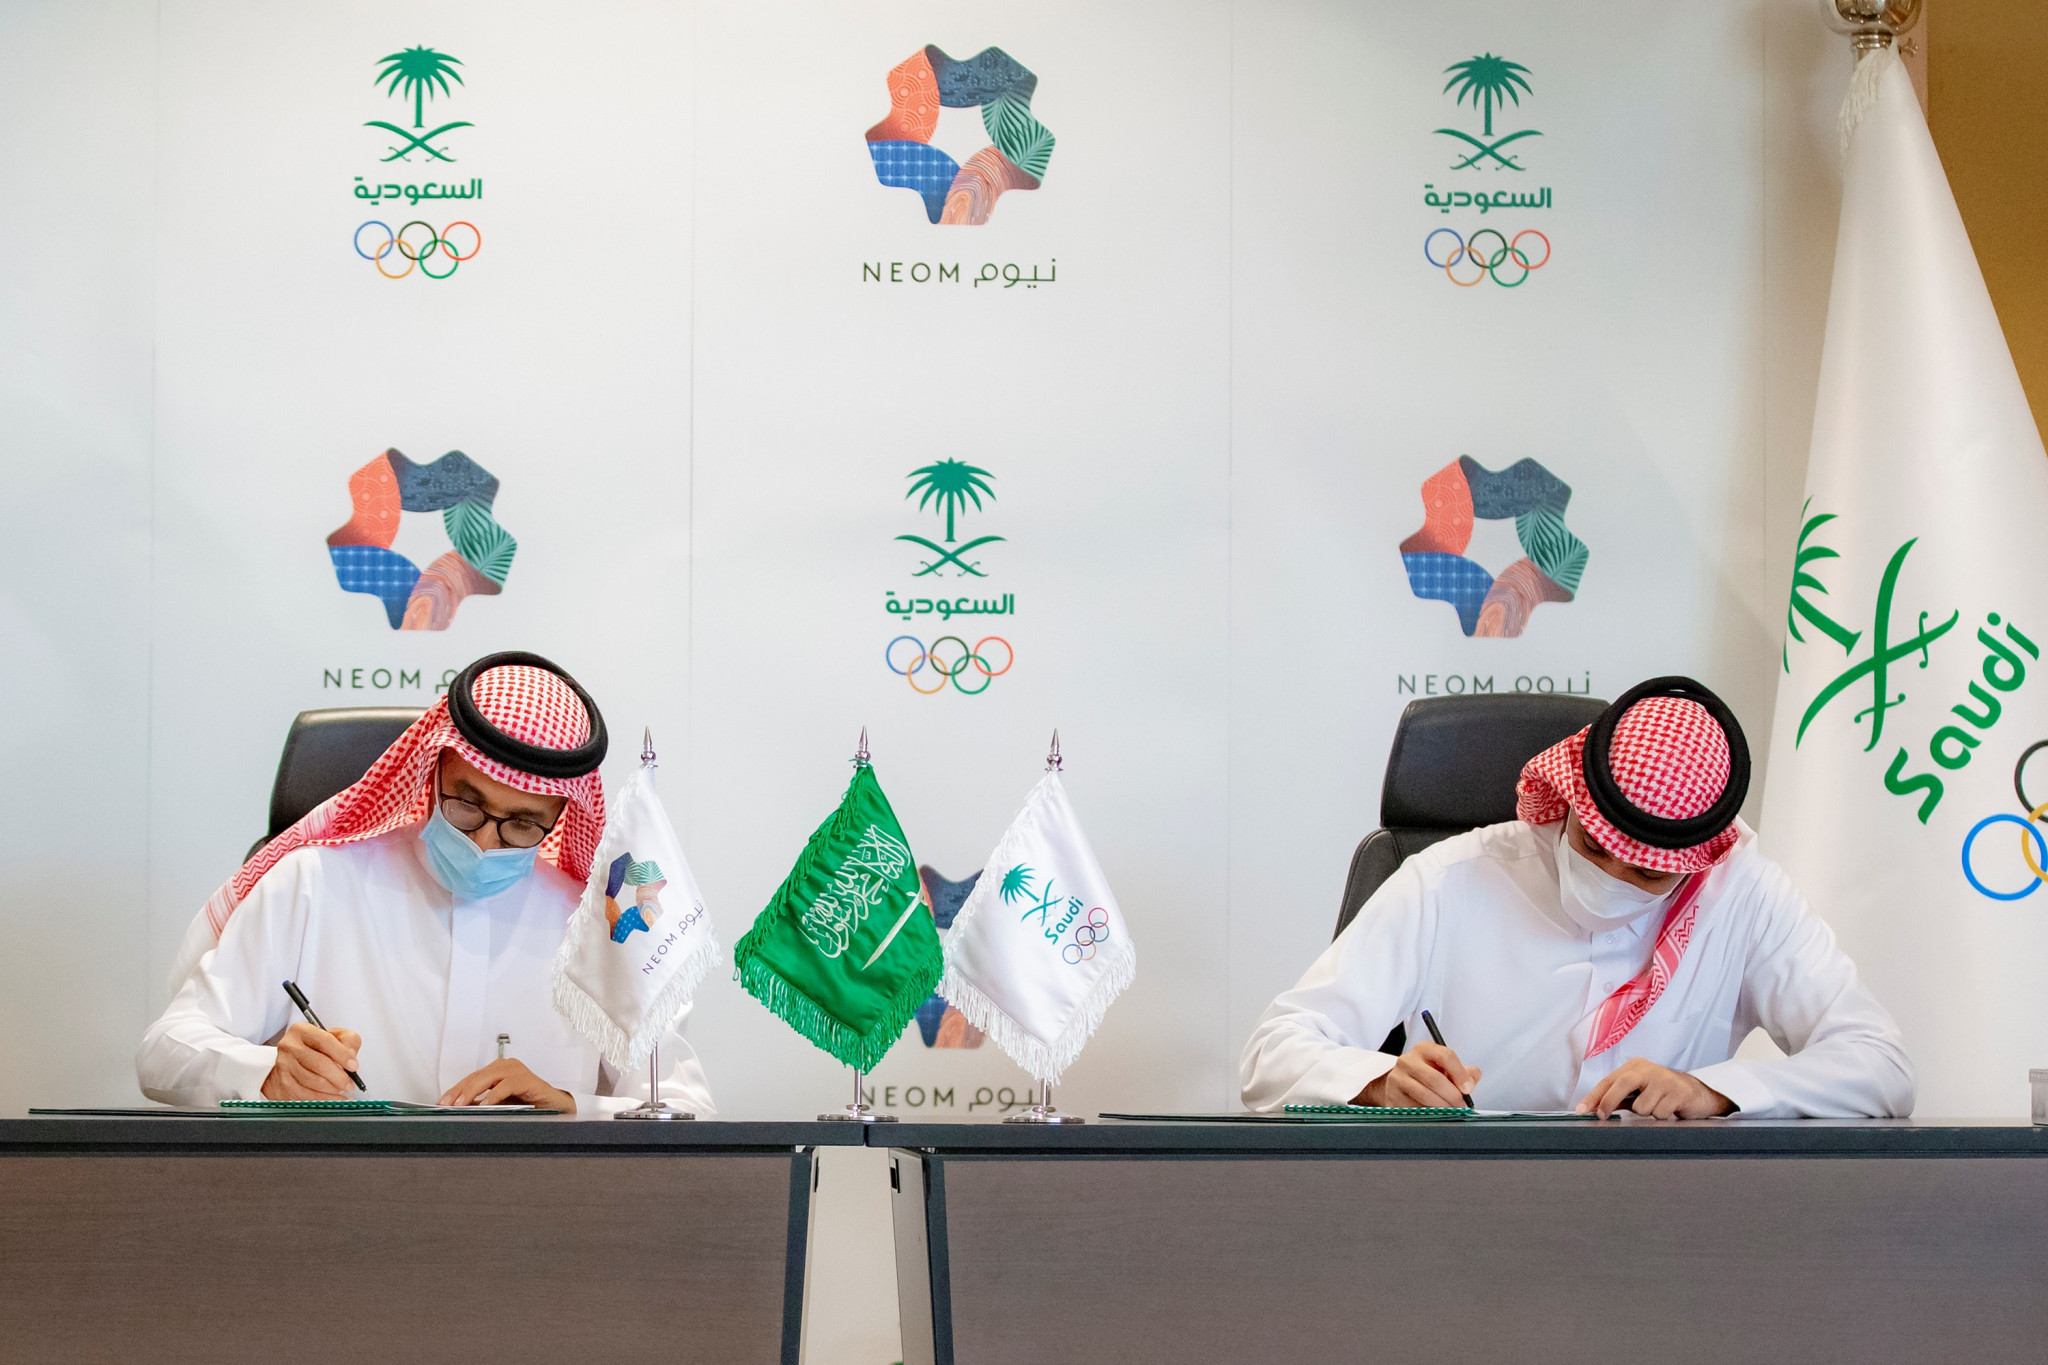 The Saudi Arabian Olympic Committee and Neom have signed a Memorandum of Understanding to develop sport in the country ©SAOC